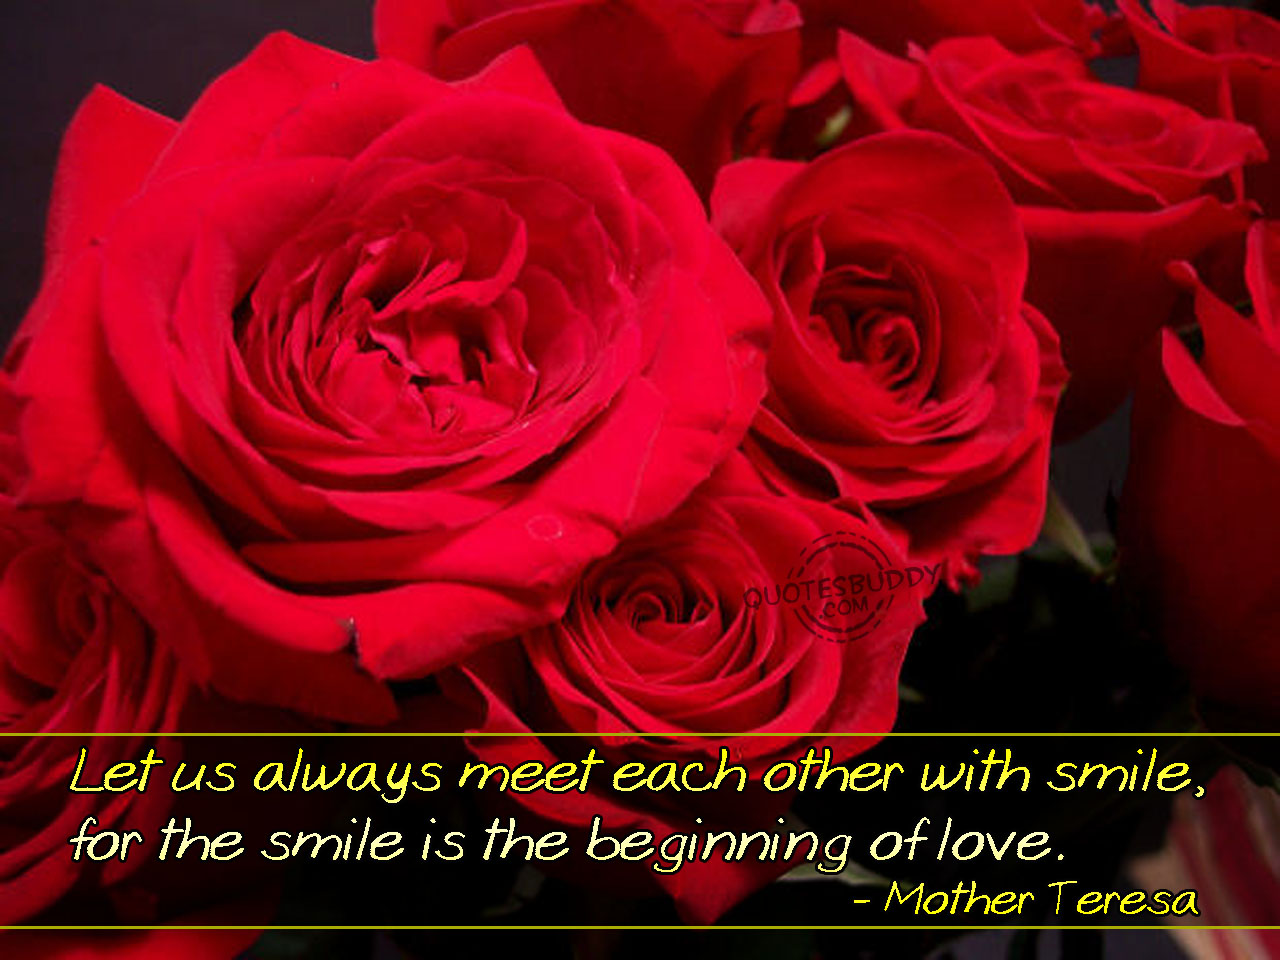 Christian Quote Smile And Love By Mother Teresa Wallpaper